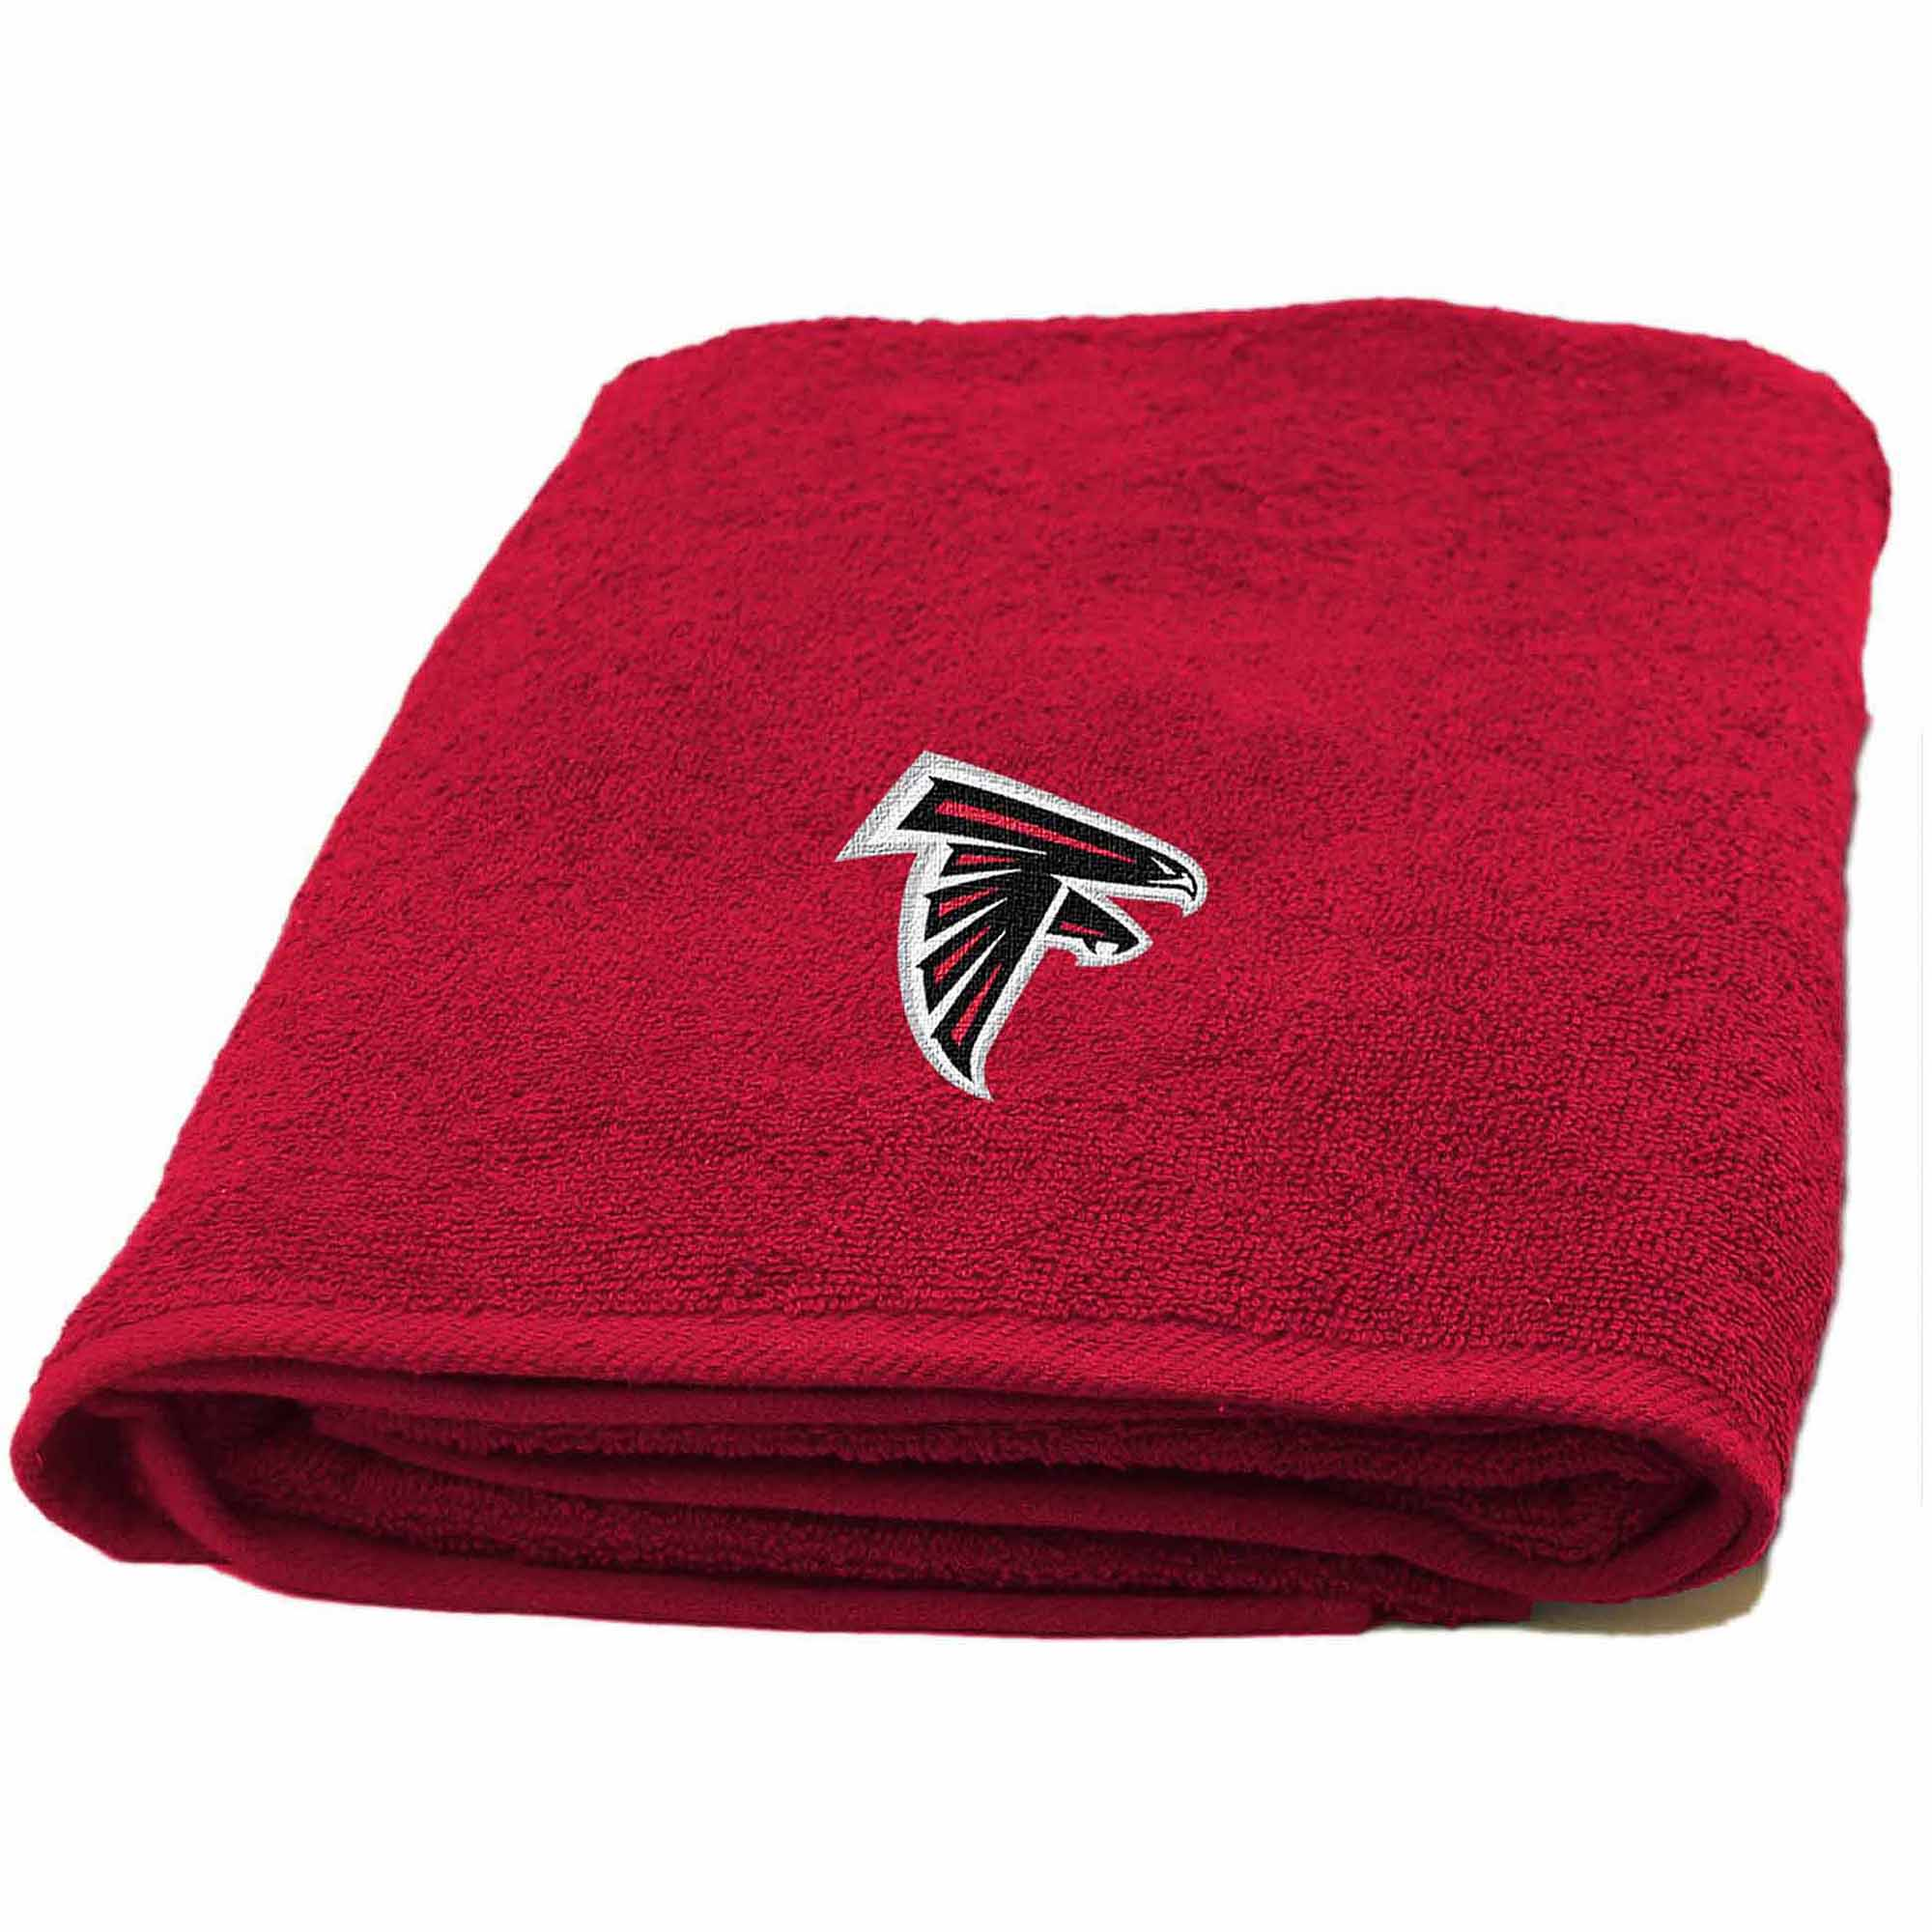 NFL Atlanta Falcons Decorative Bath Collection - Bath Towel